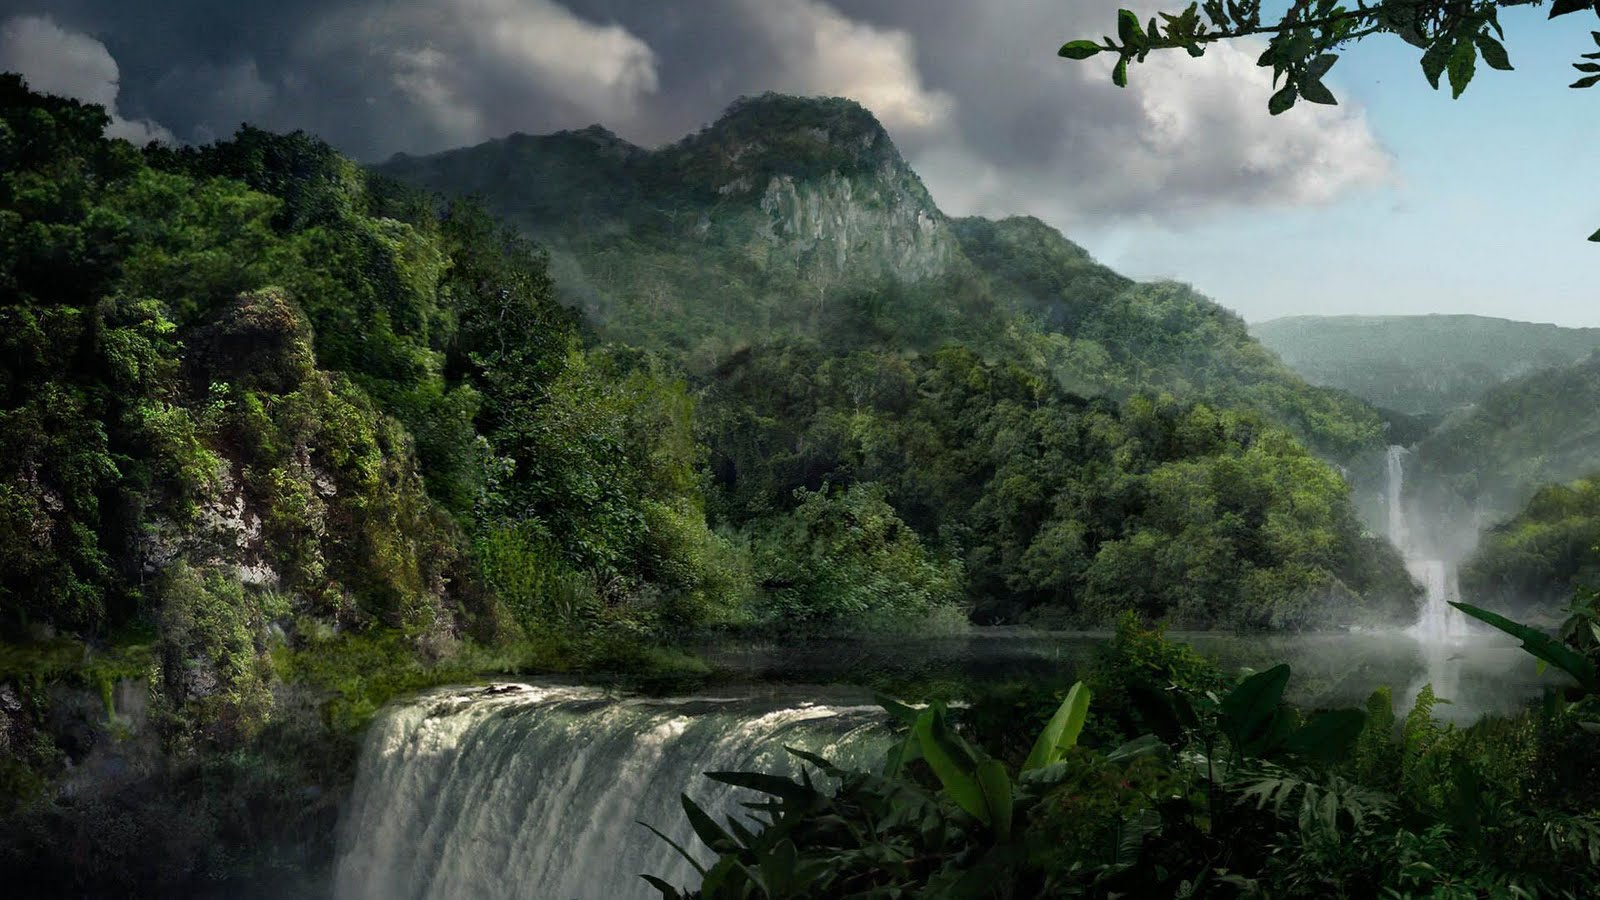 HD Jungle Wallpapers ~ Landscape Wallpapers|HD Wallpapers ...